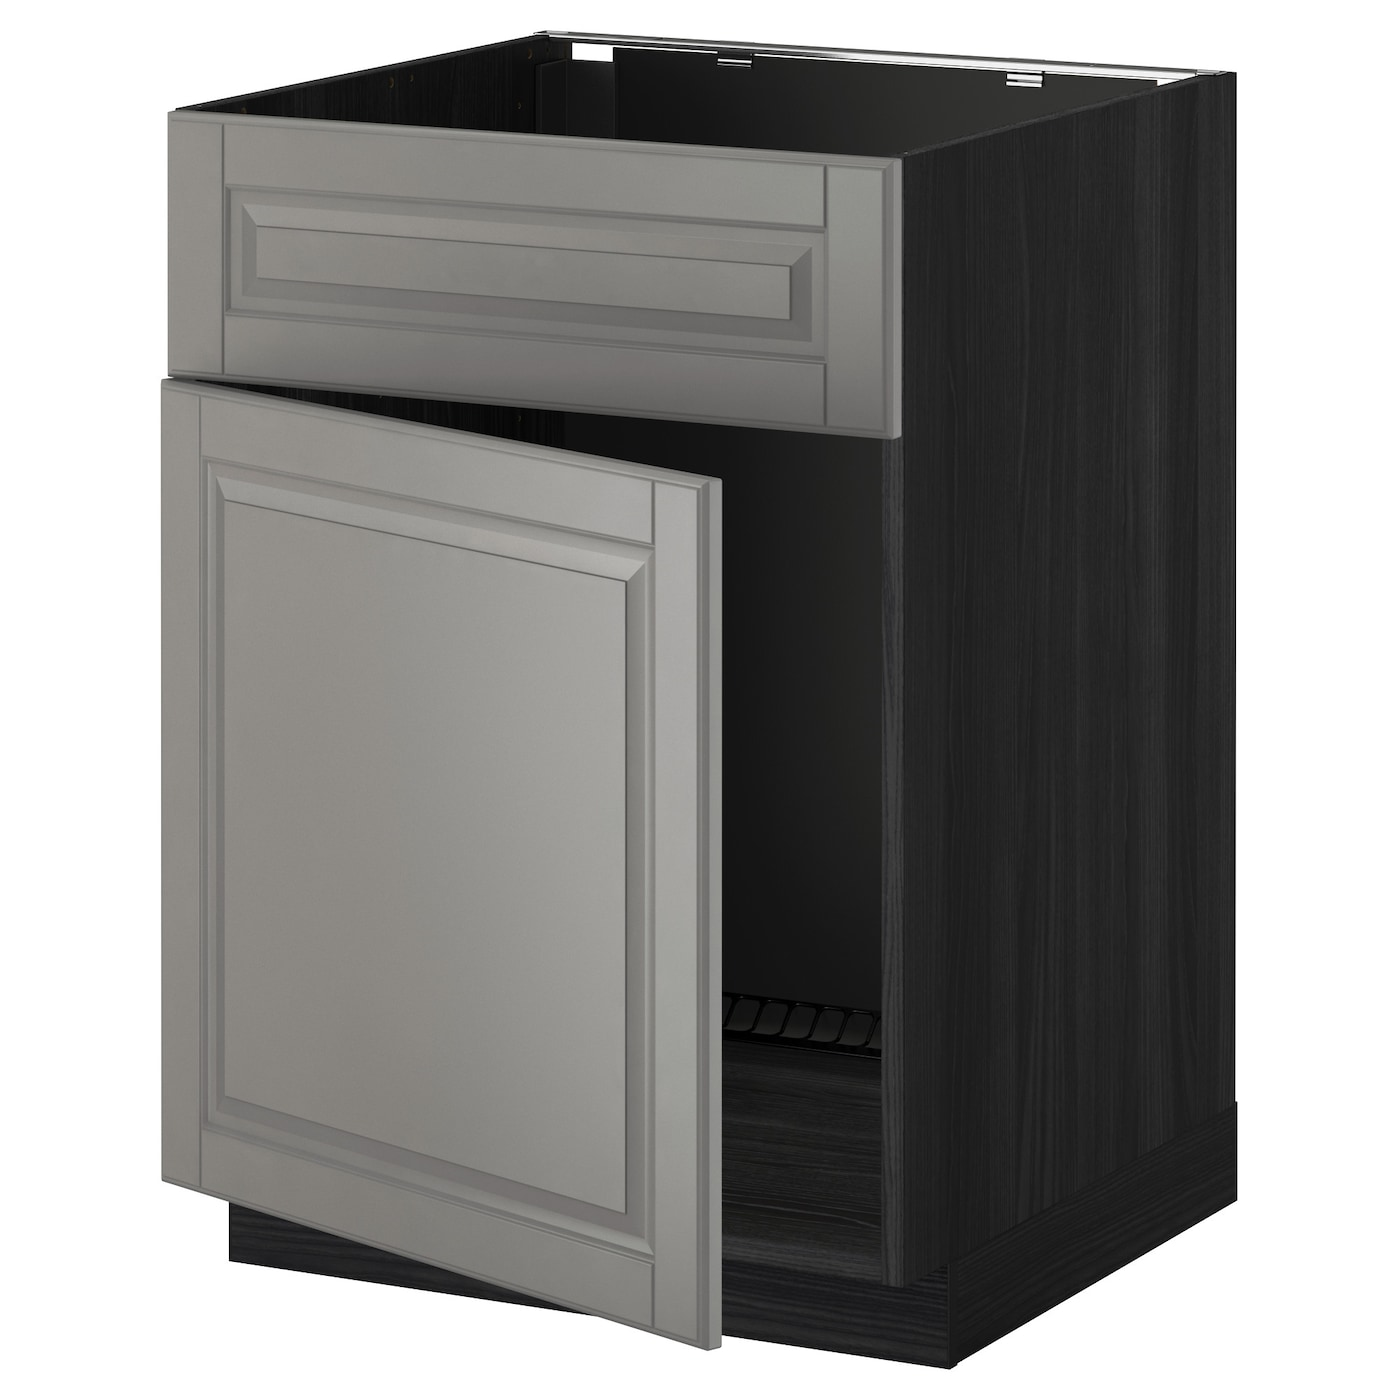 black kitchen base cabinets metod base cabinet f sink w door front black bodbyn grey 12375